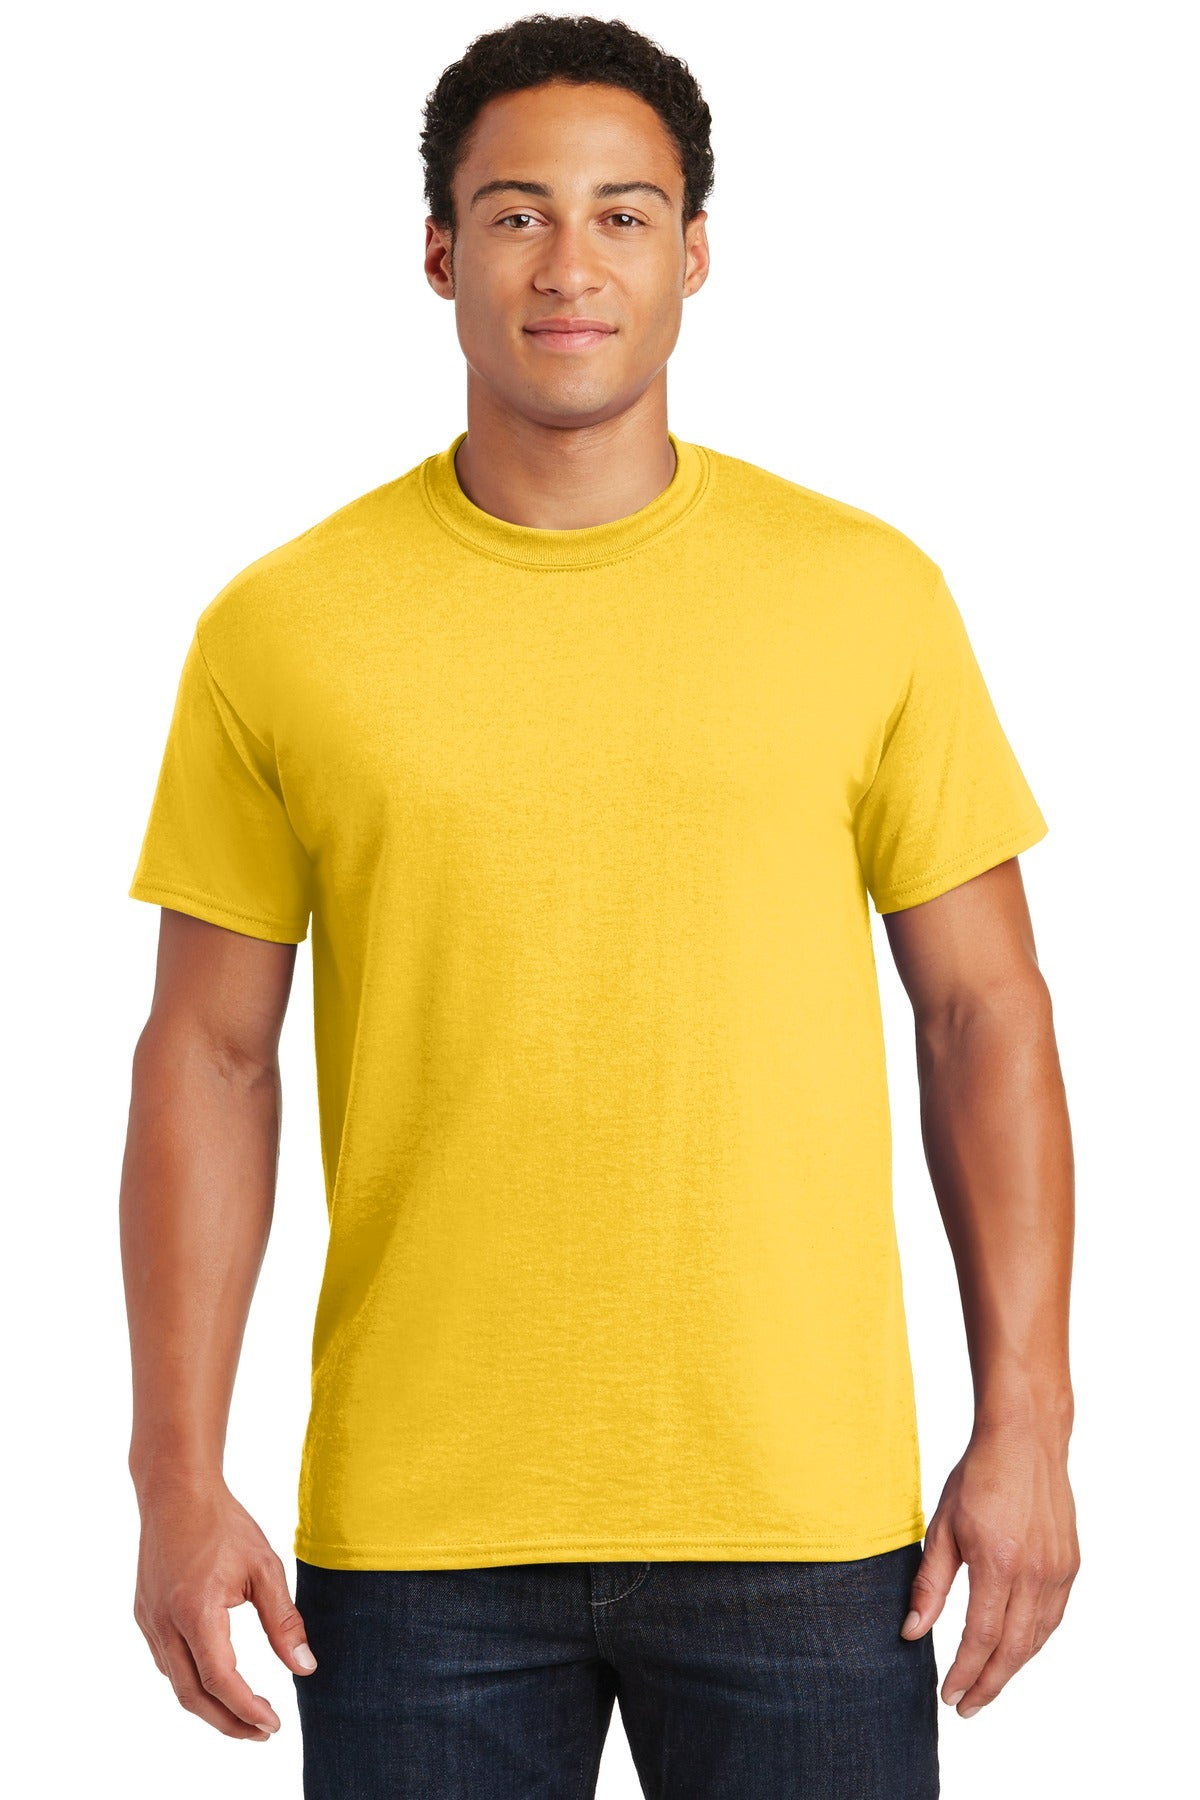 Daisy Gildan DryBlend 50 Cotton/50 Poly T-Shirt.